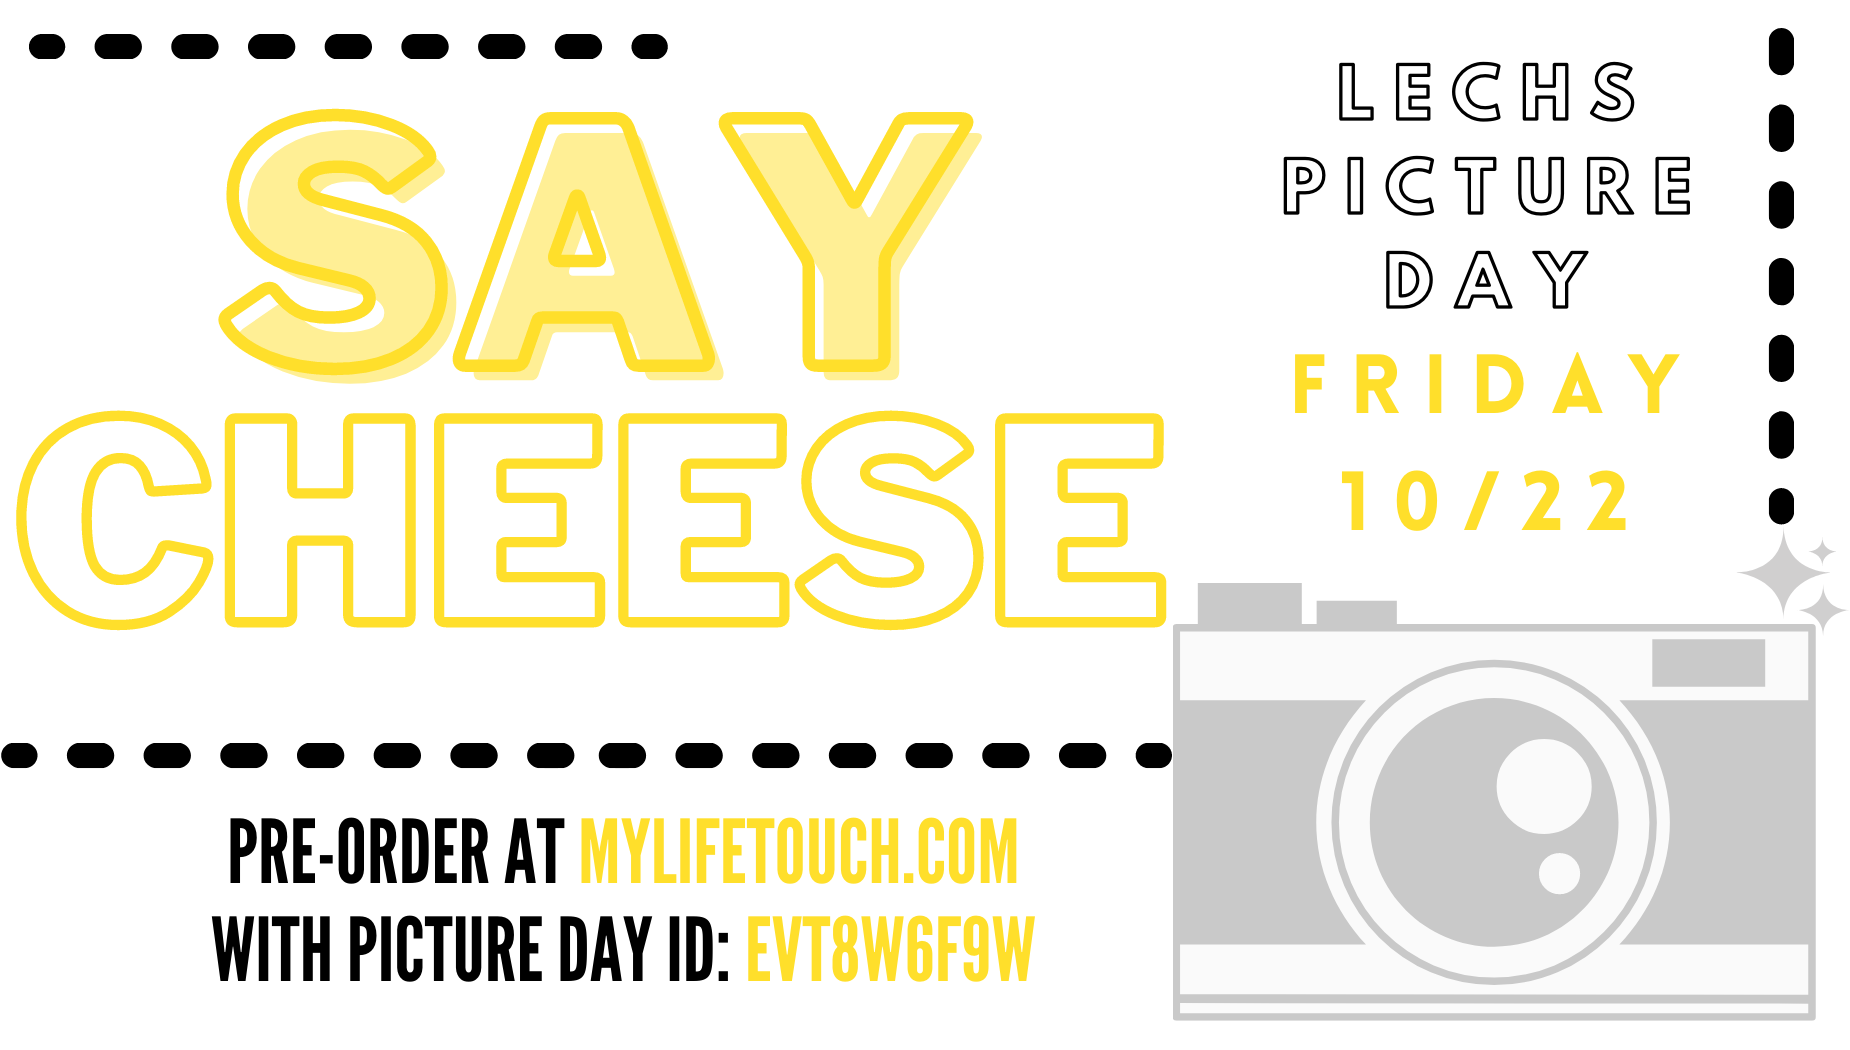 LECHS Picture Day Friday, 10/22, Pre-Order at mylifetouch.com